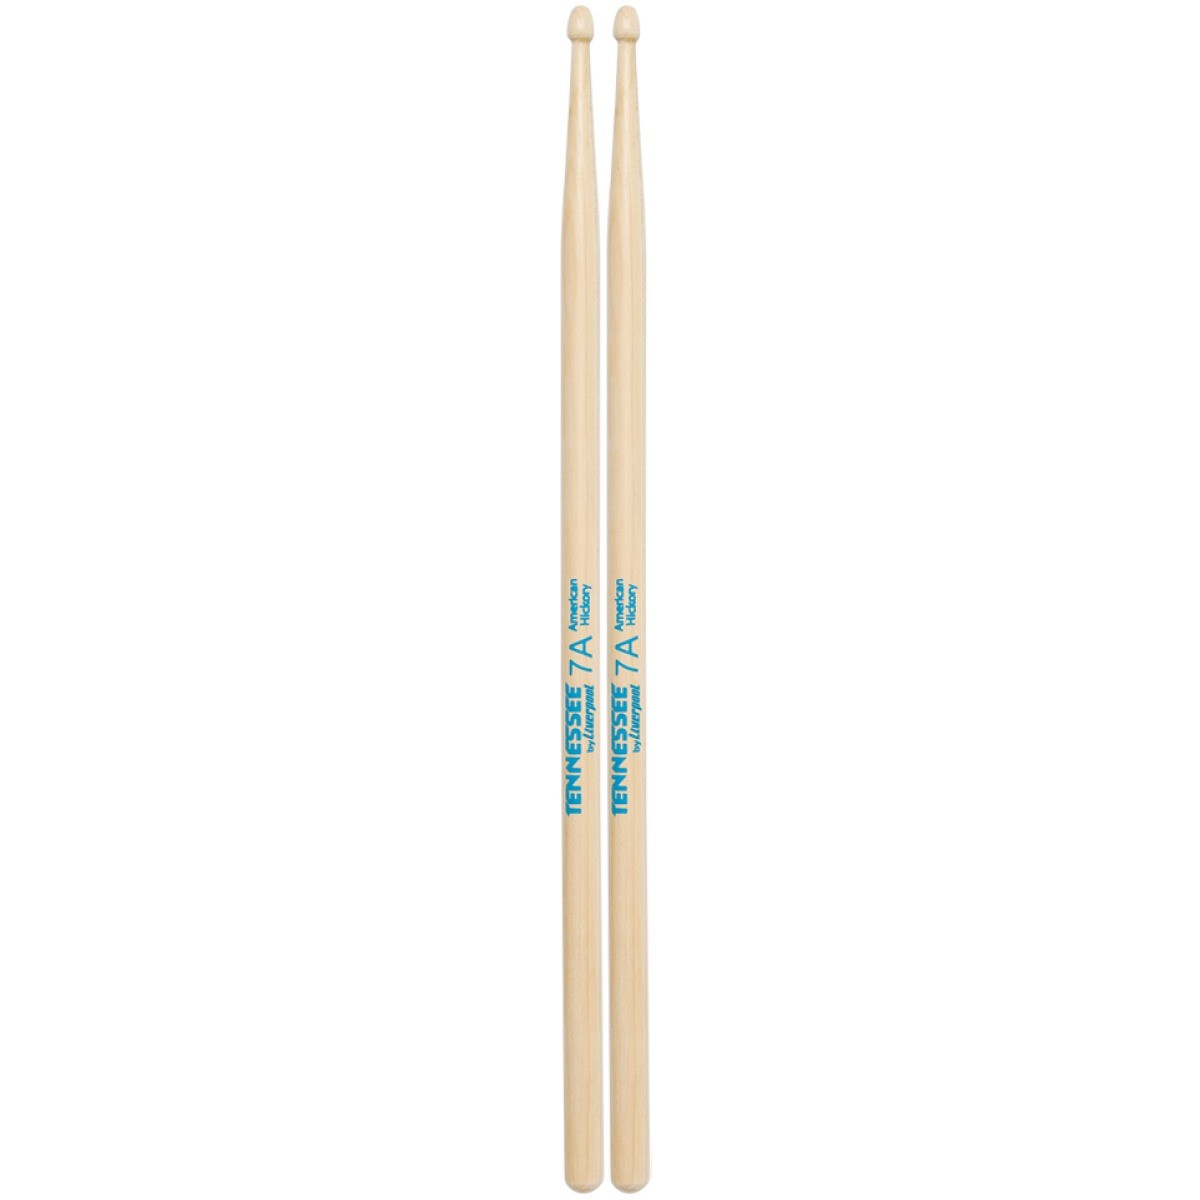 Baqueta Liverpool Tennessee American Wood Hickory 7A